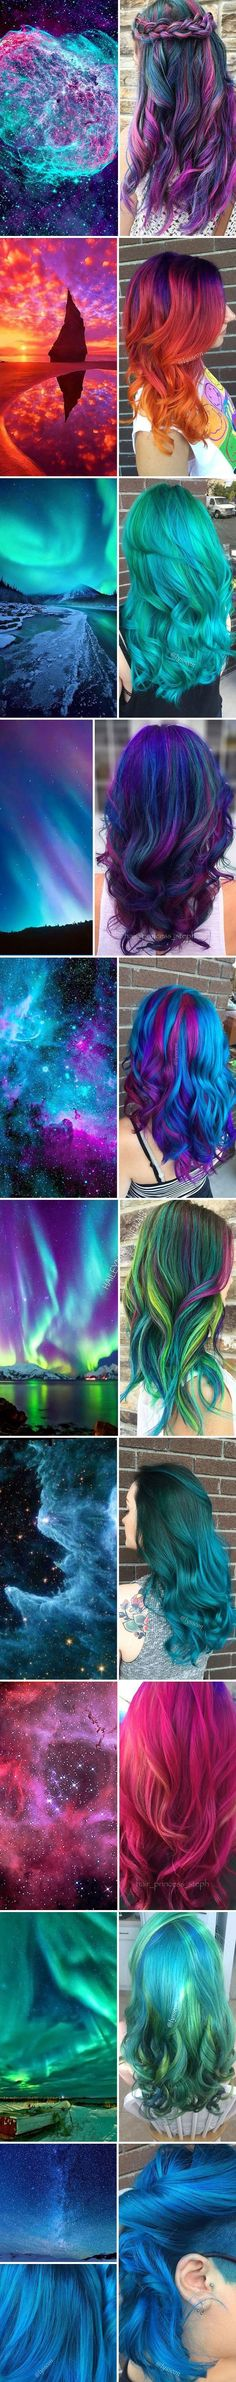 """cool This """"Galaxy Hair"""" trend is actually quite mesmerizing by http://www.danazhaircuts.xyz/scene-hair/this-galaxy-hair-trend-is-actually-quite-mesmerizing/"""